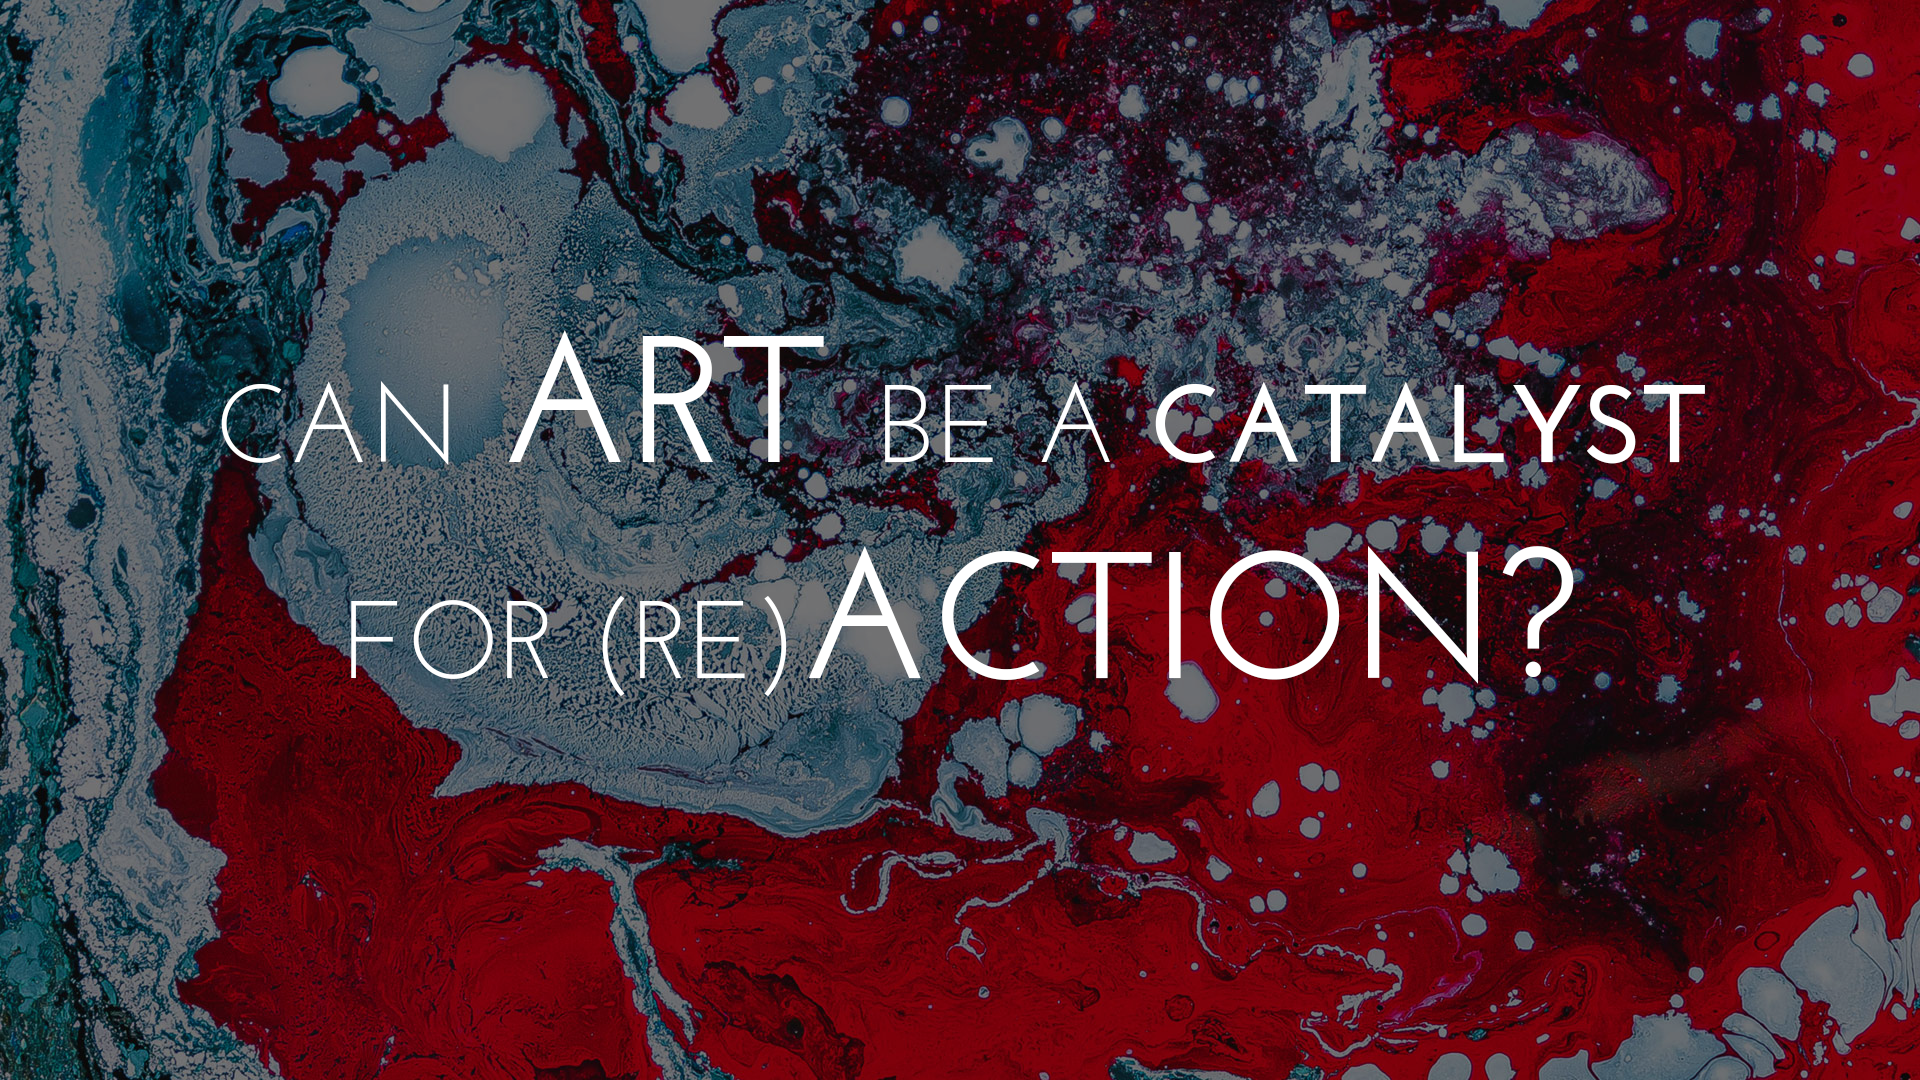 Can Art be a Catalyst for Action